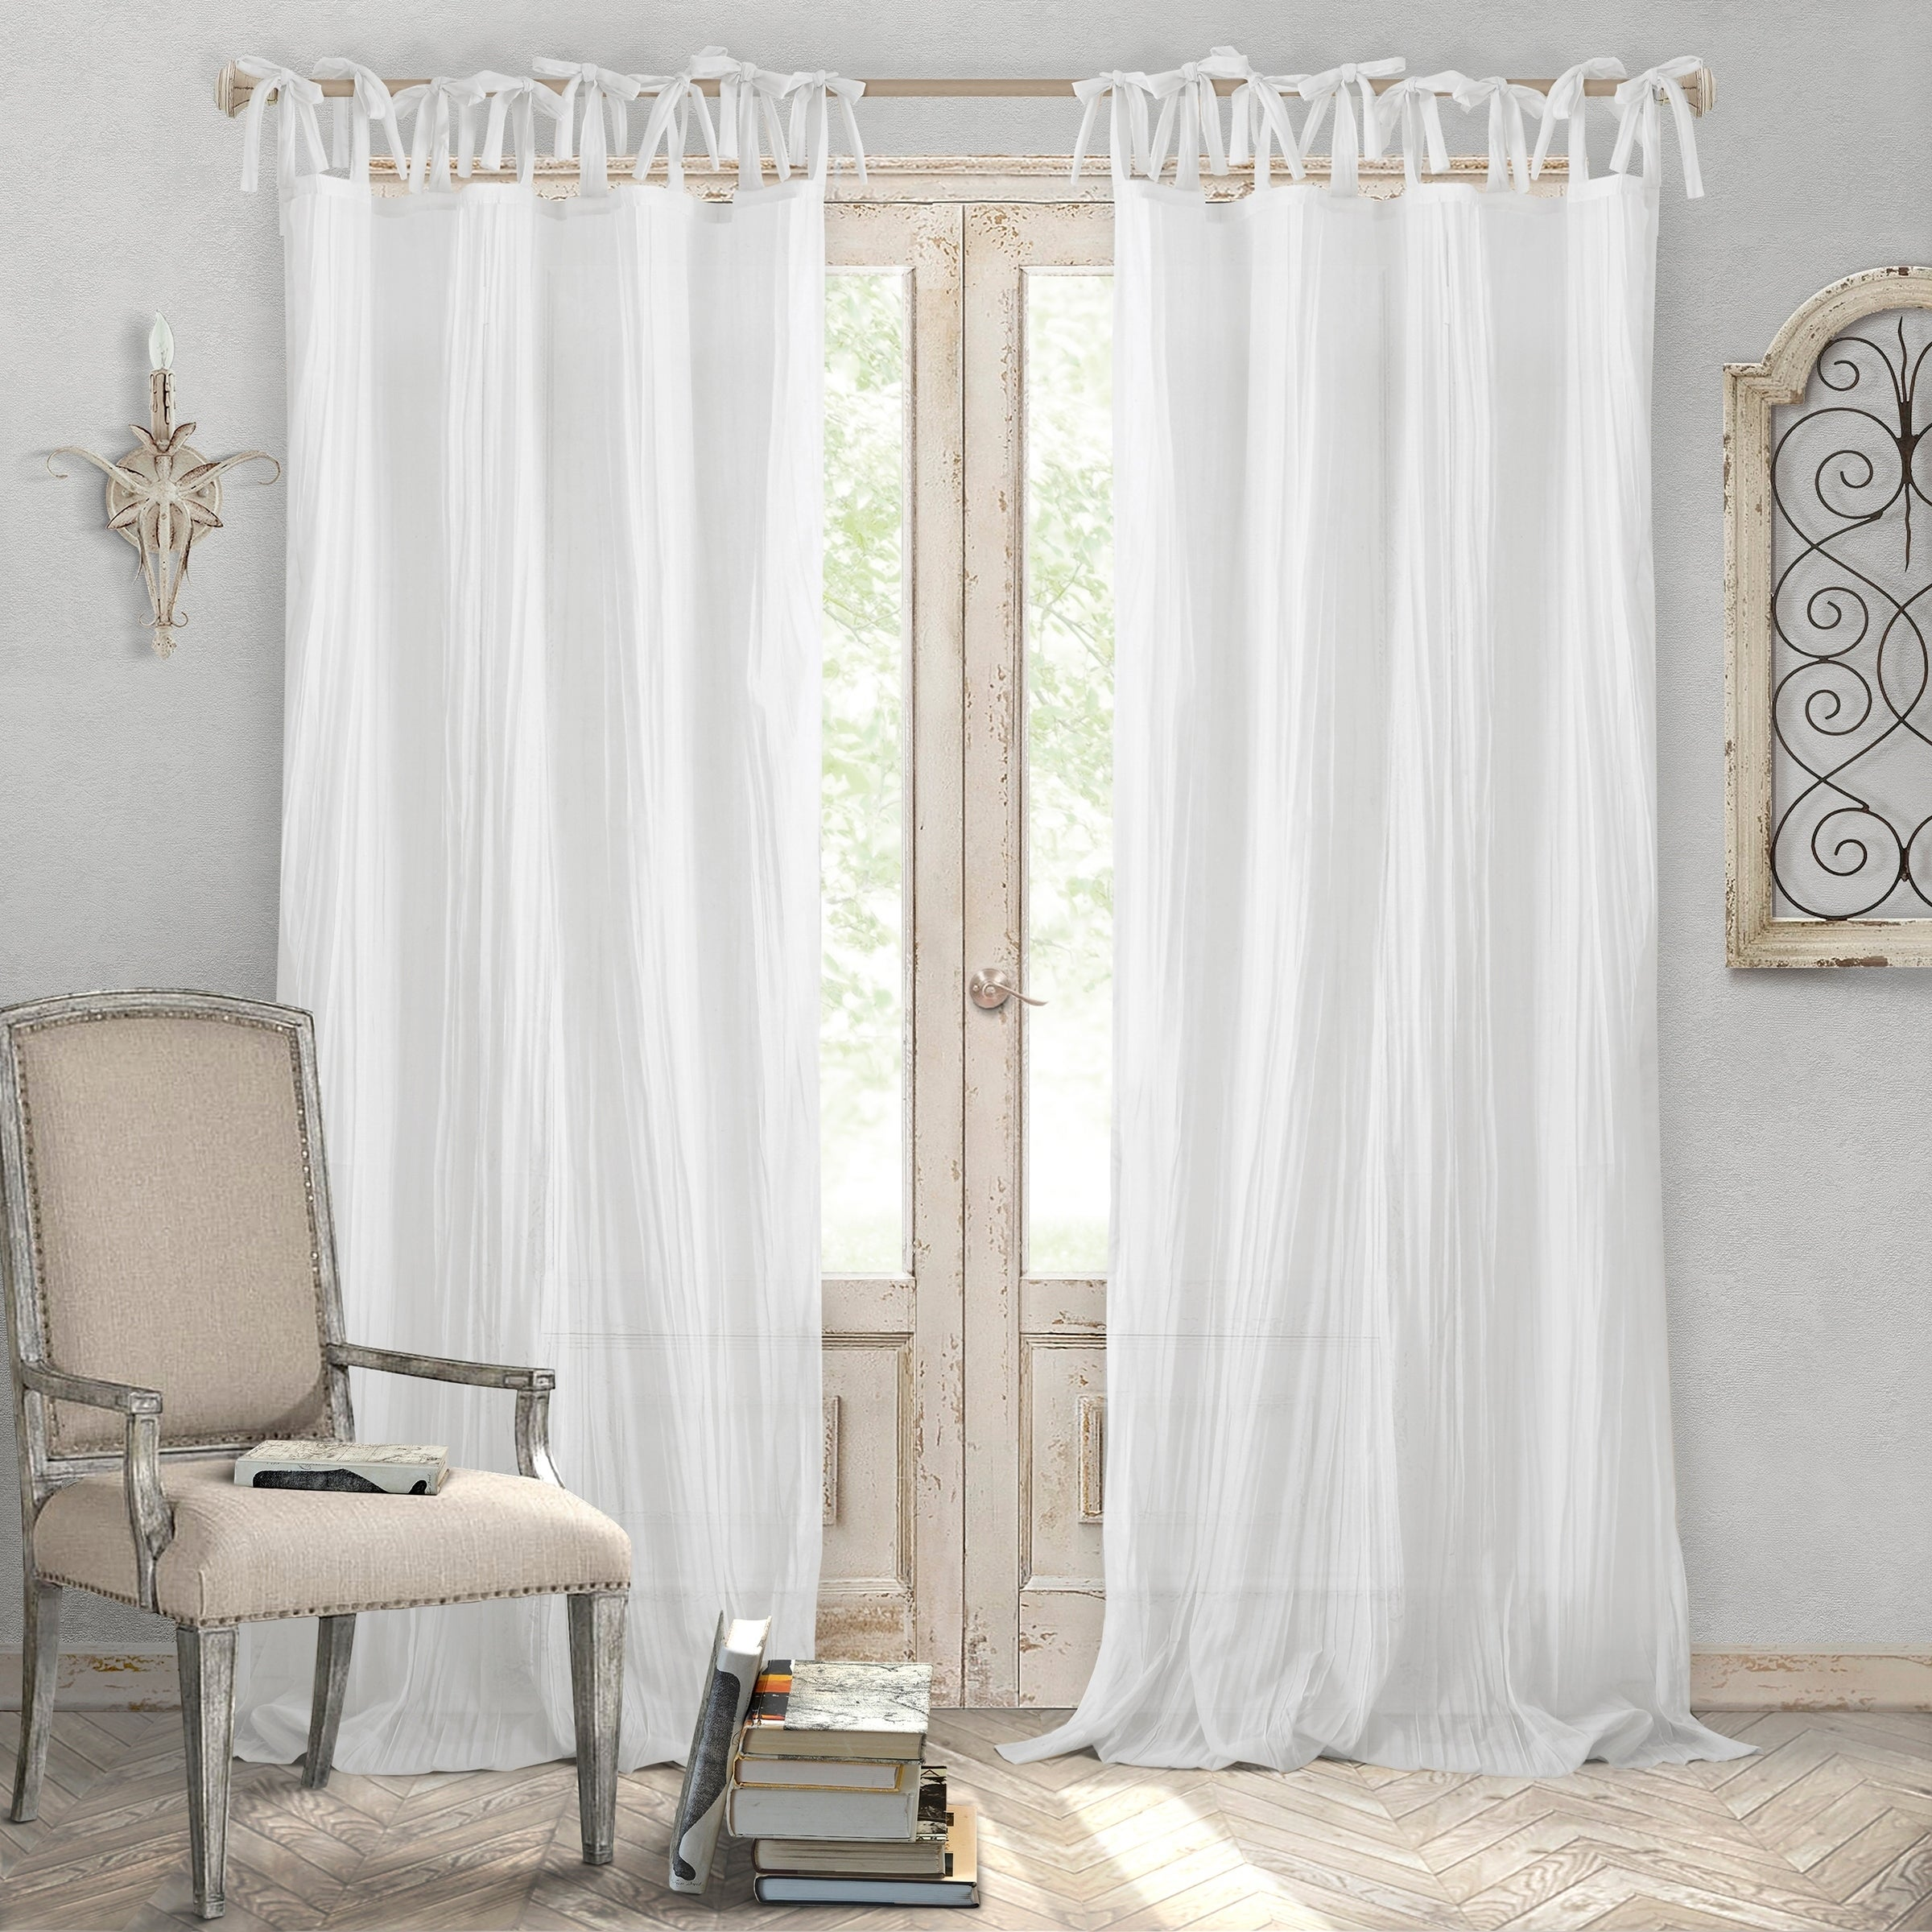 treatments window and curtains for tie linen drapes top colors endearing rod curtain interior chic with fill draperies beautiful